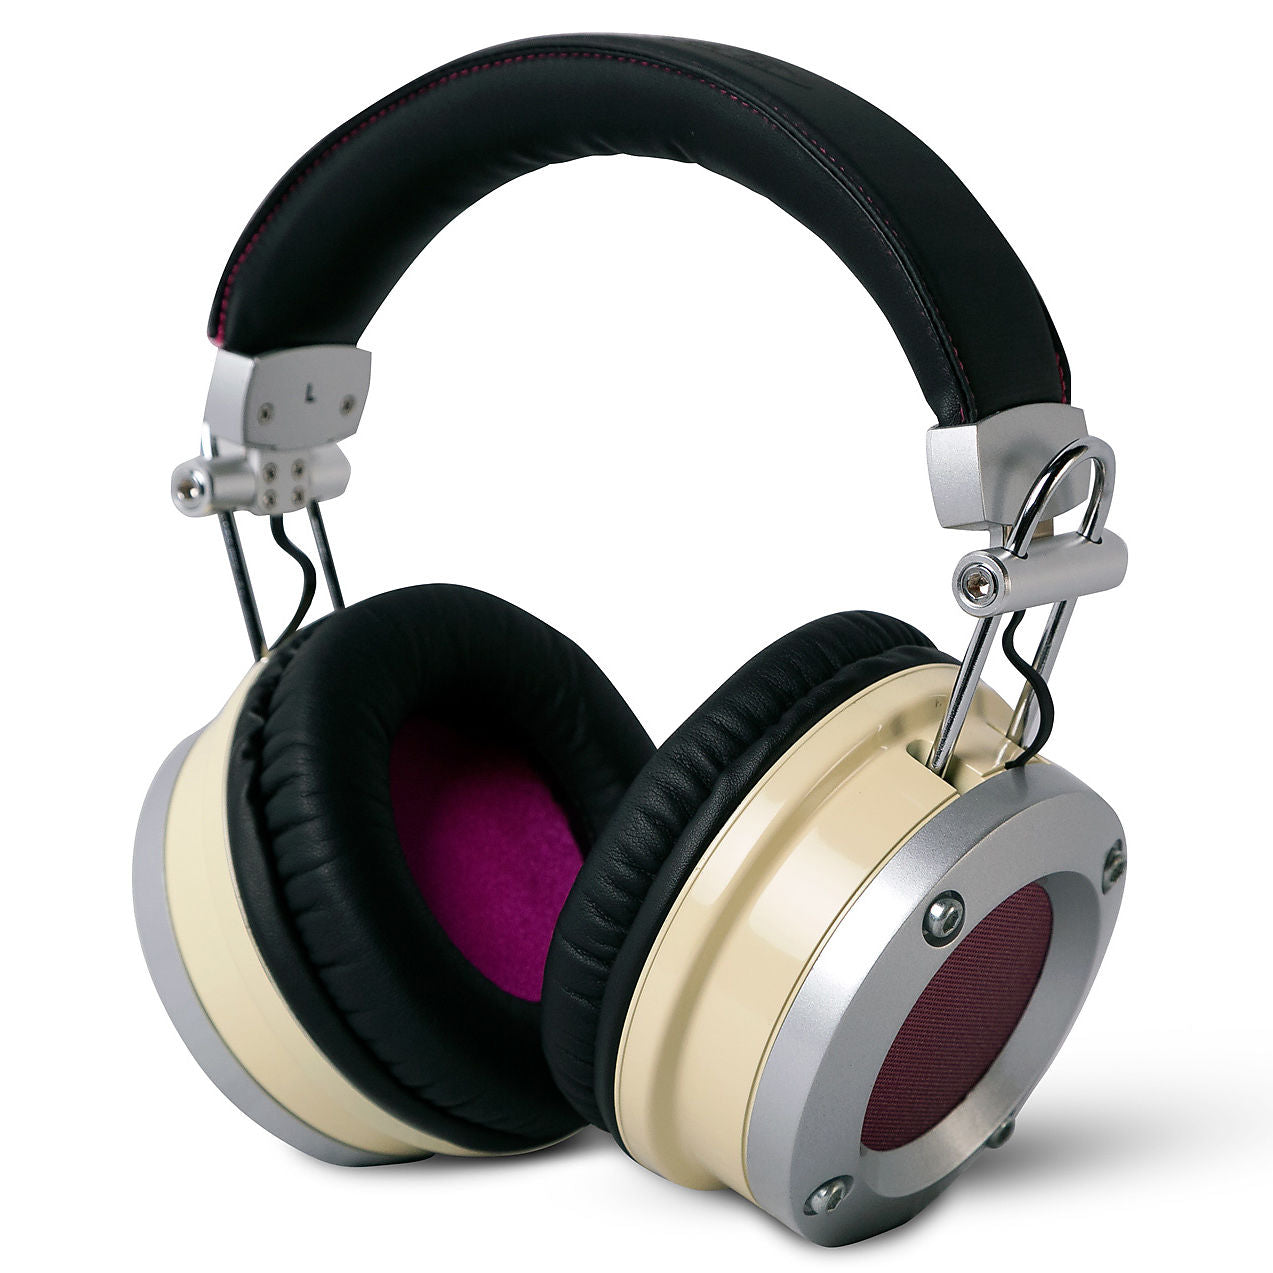 Avantone MP1 Mixphones Over-Ear Closed-Back Studio Headphones, Ivory